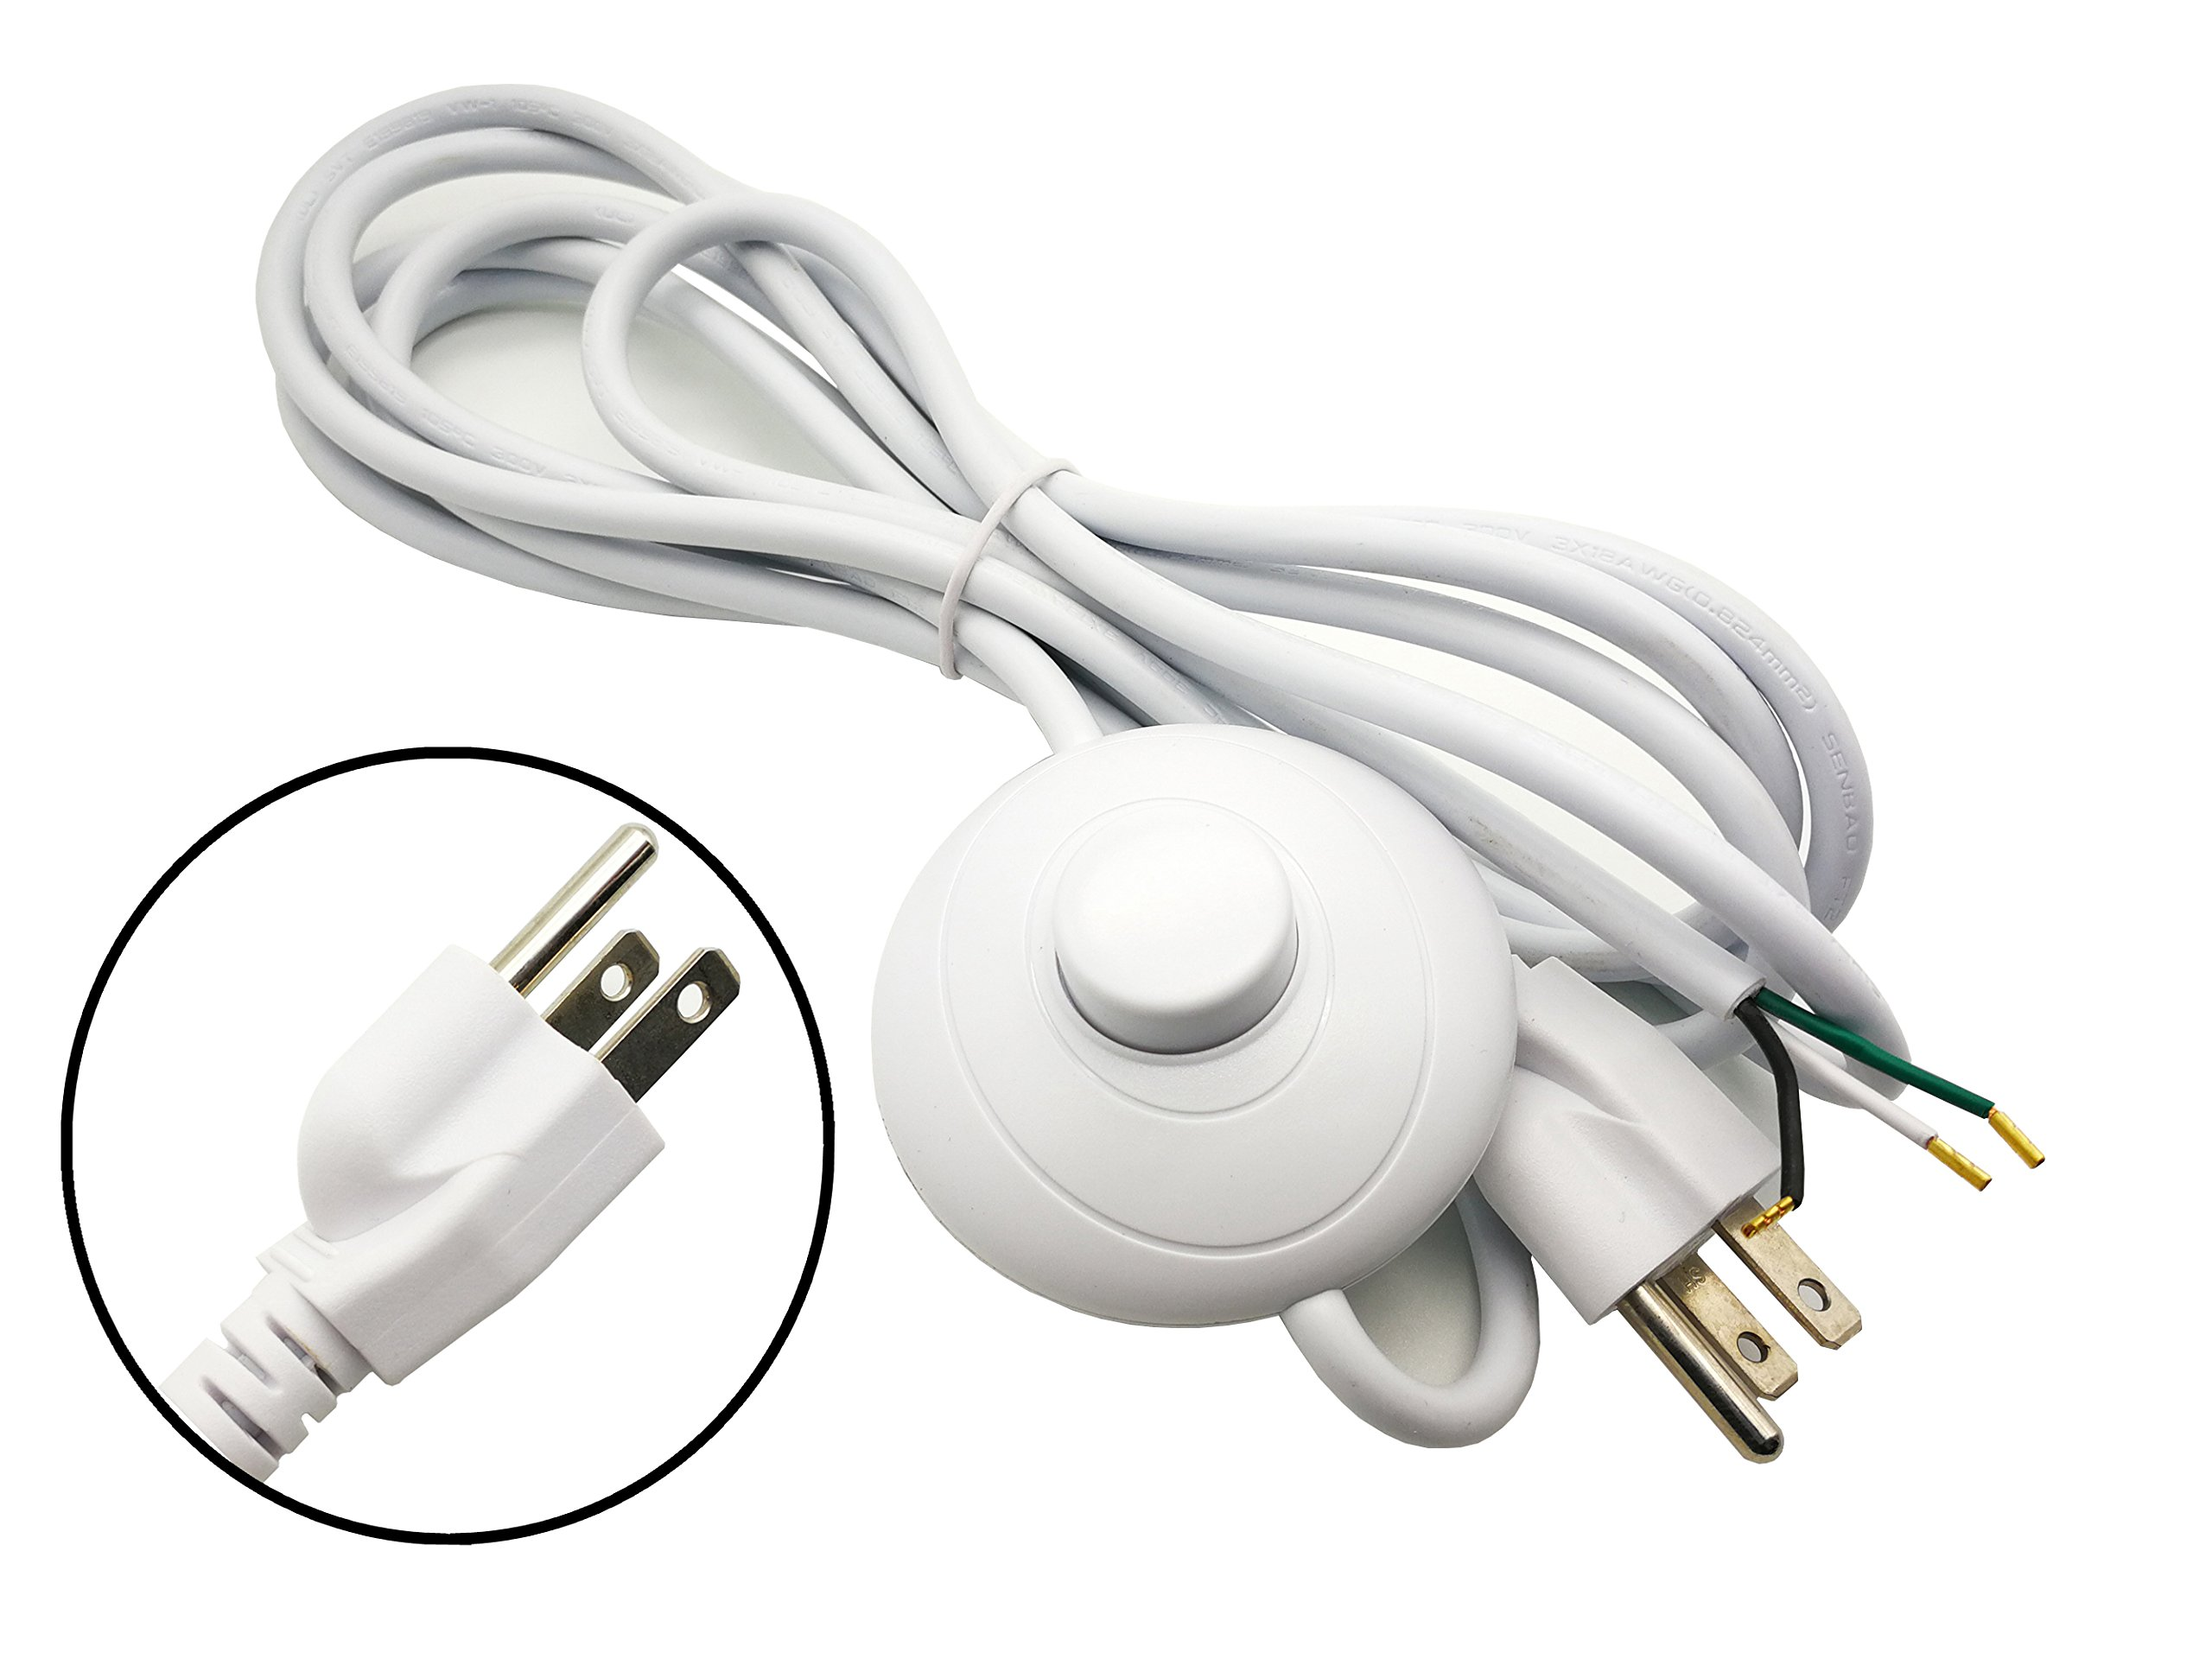 FINE COMMODITIES US Plug SVT 3×18AWG 3M Power Cord on/off Button Switch AC110V 10-15A,White Environmental Protection Materials